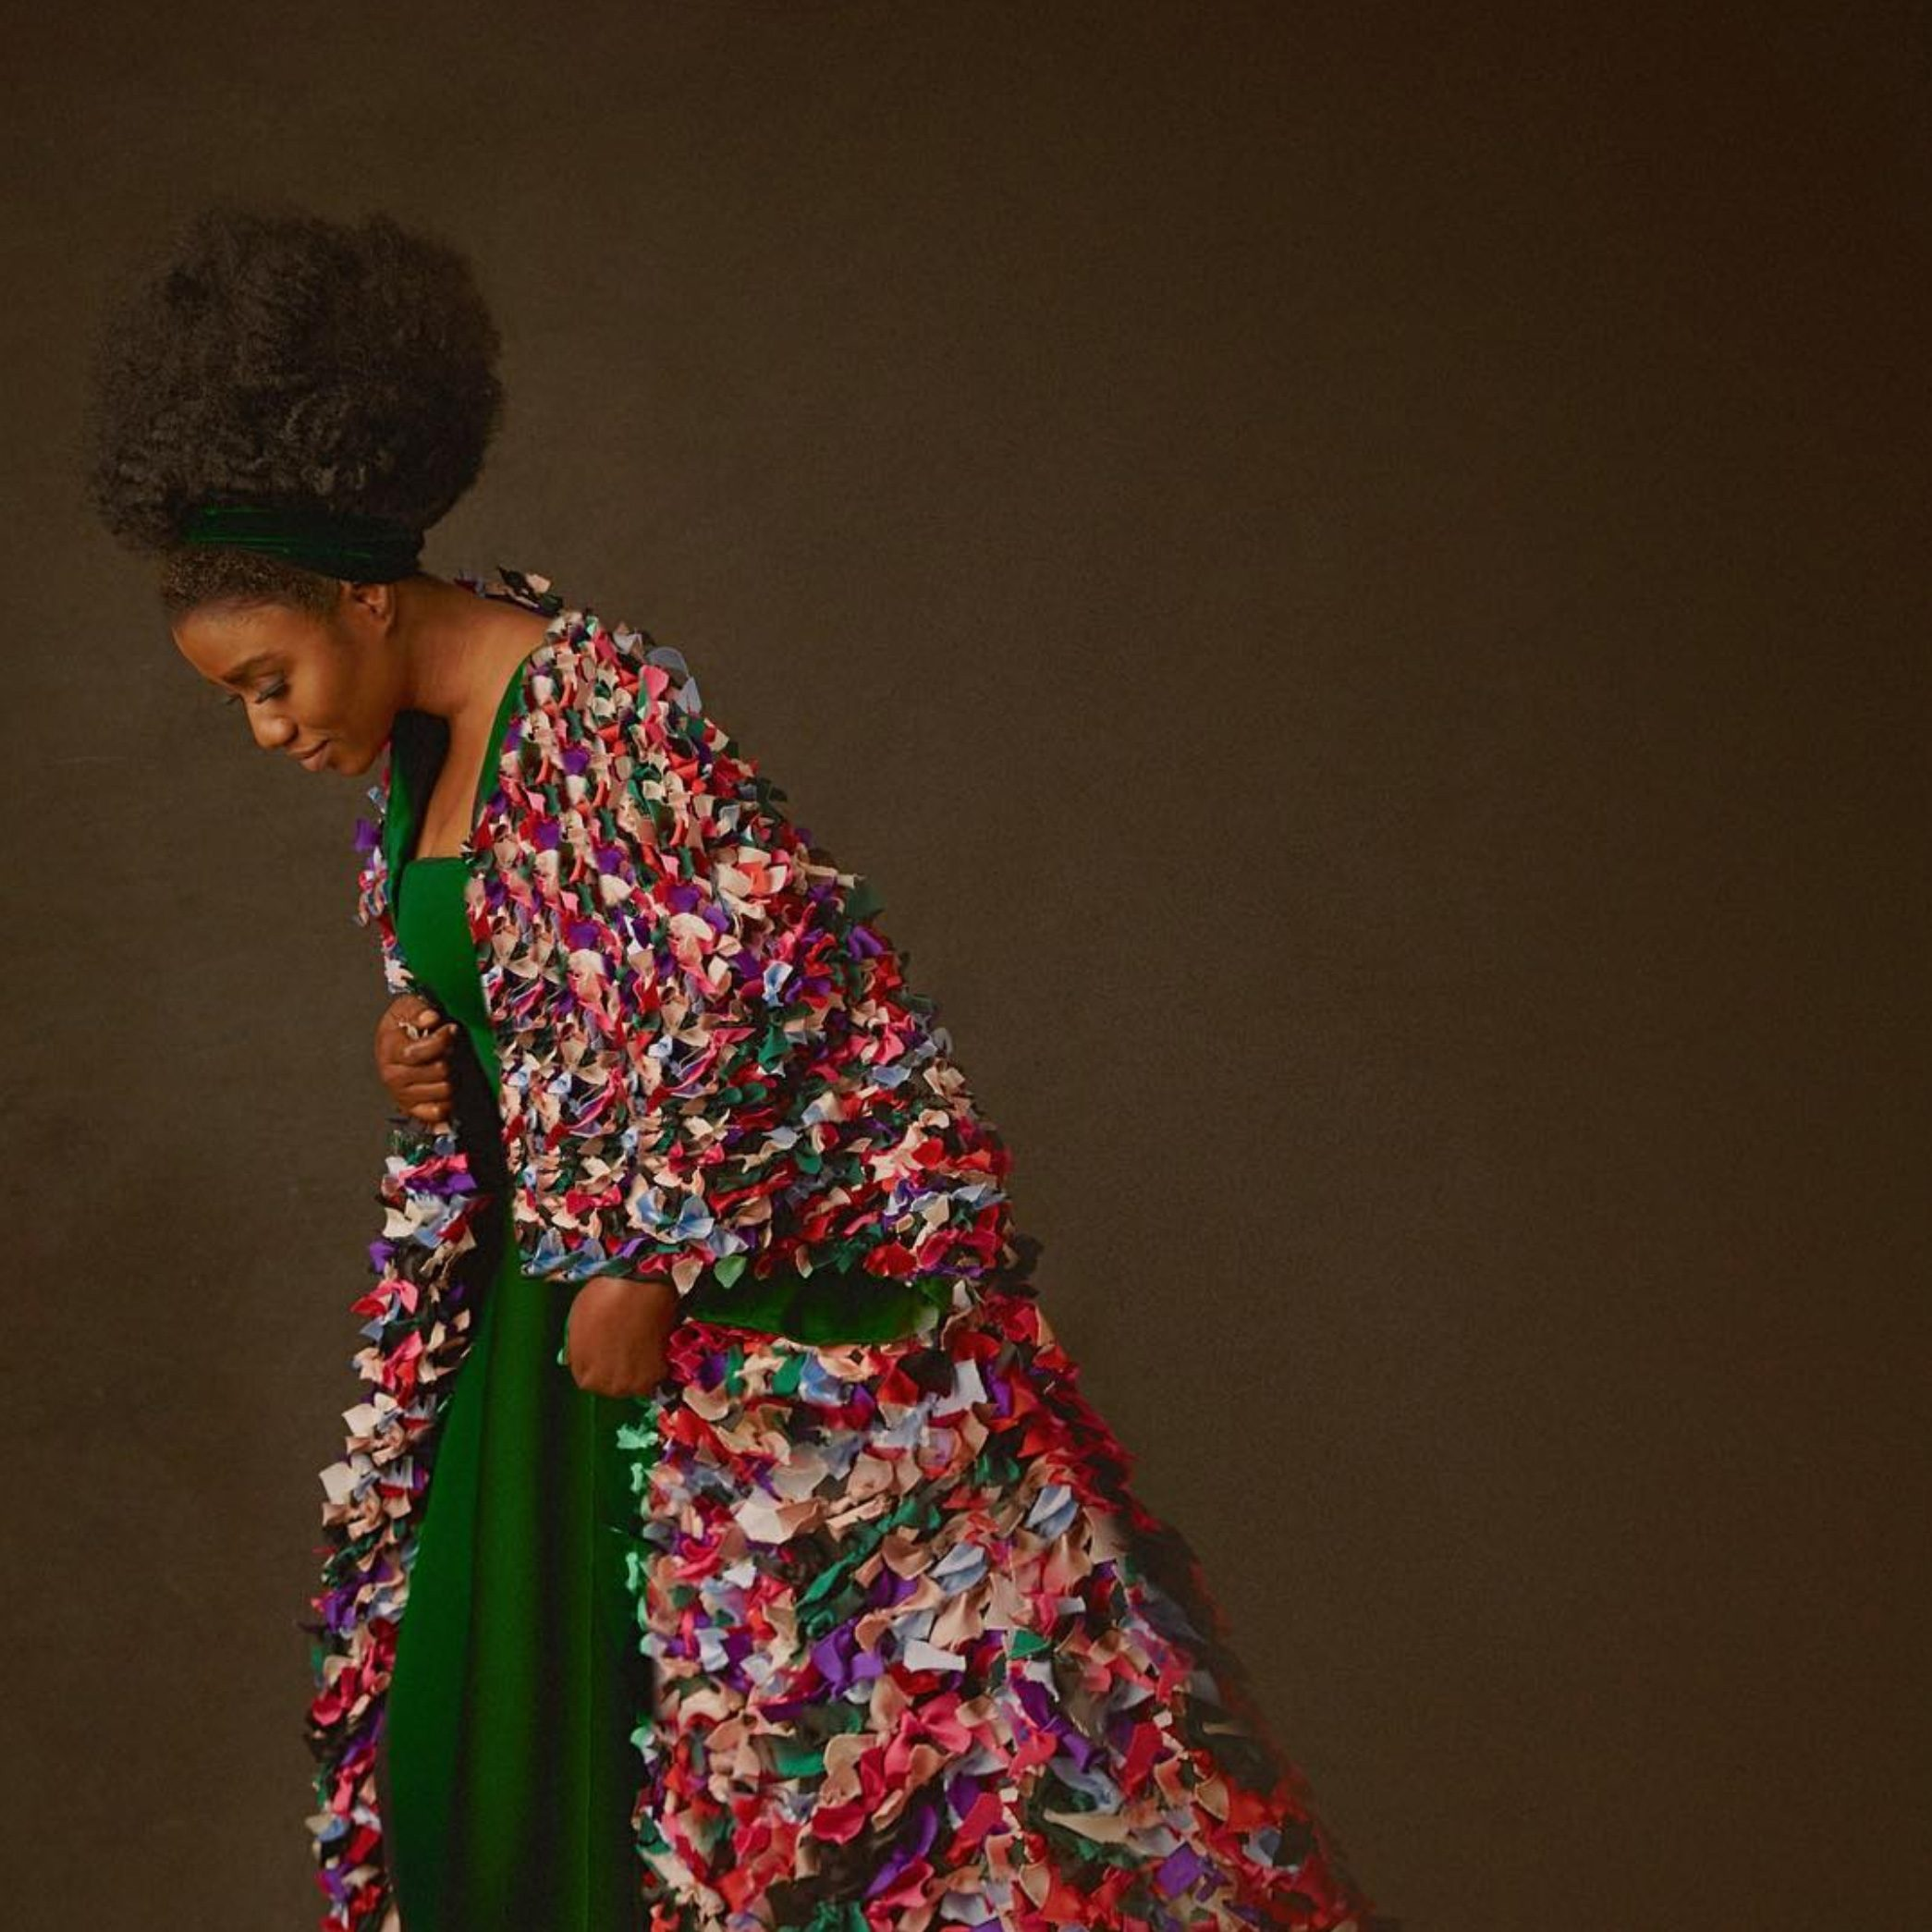 TY BELLO | AWARD-WINNING SINGER & PHOTOGRAPHER